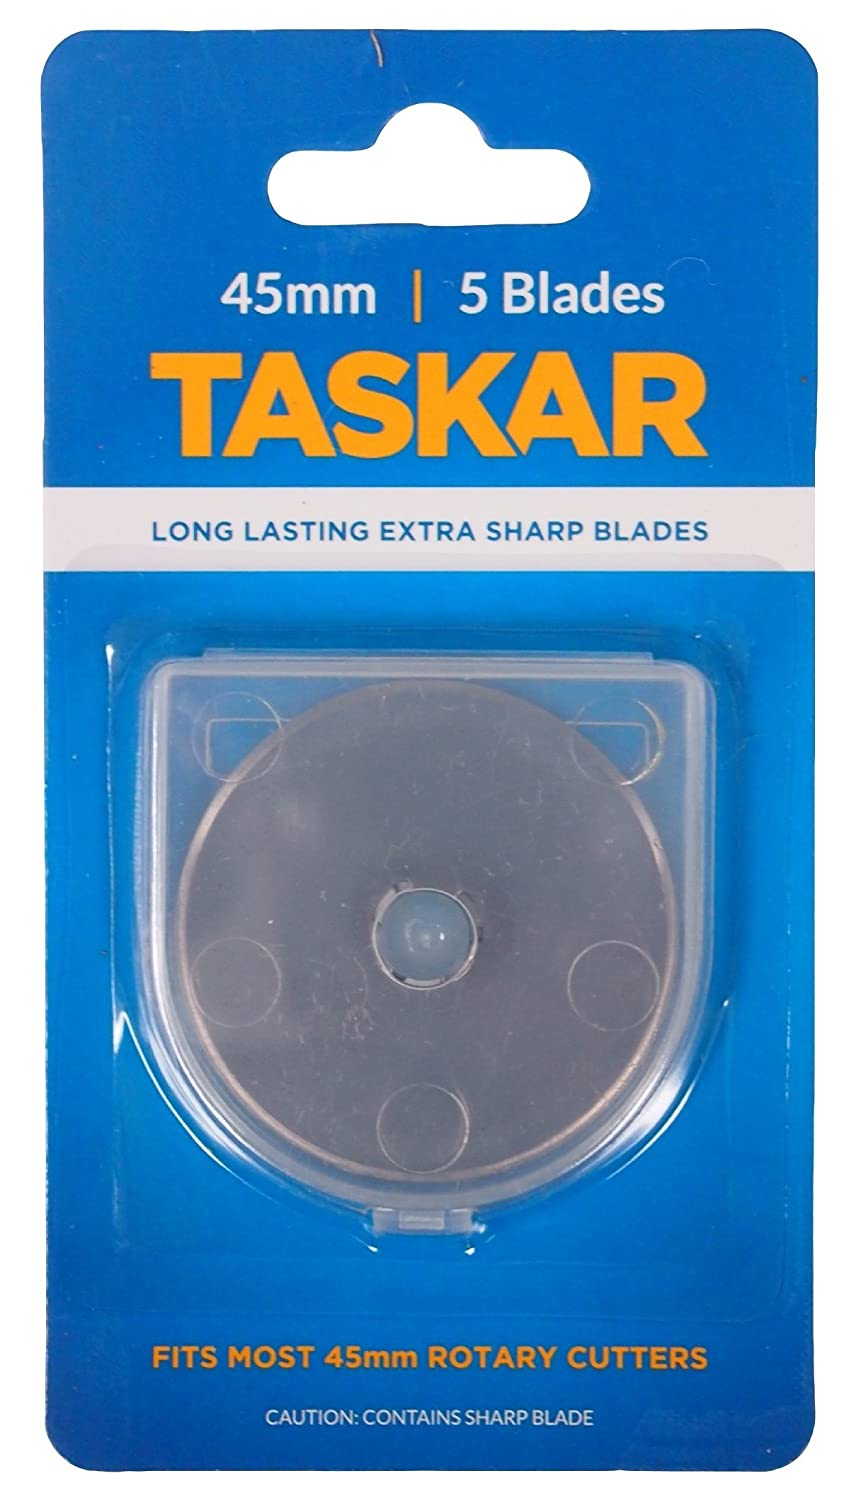 Taskar 45mm Rotary Cutter Blades for Olfa Etc - 5 Pack